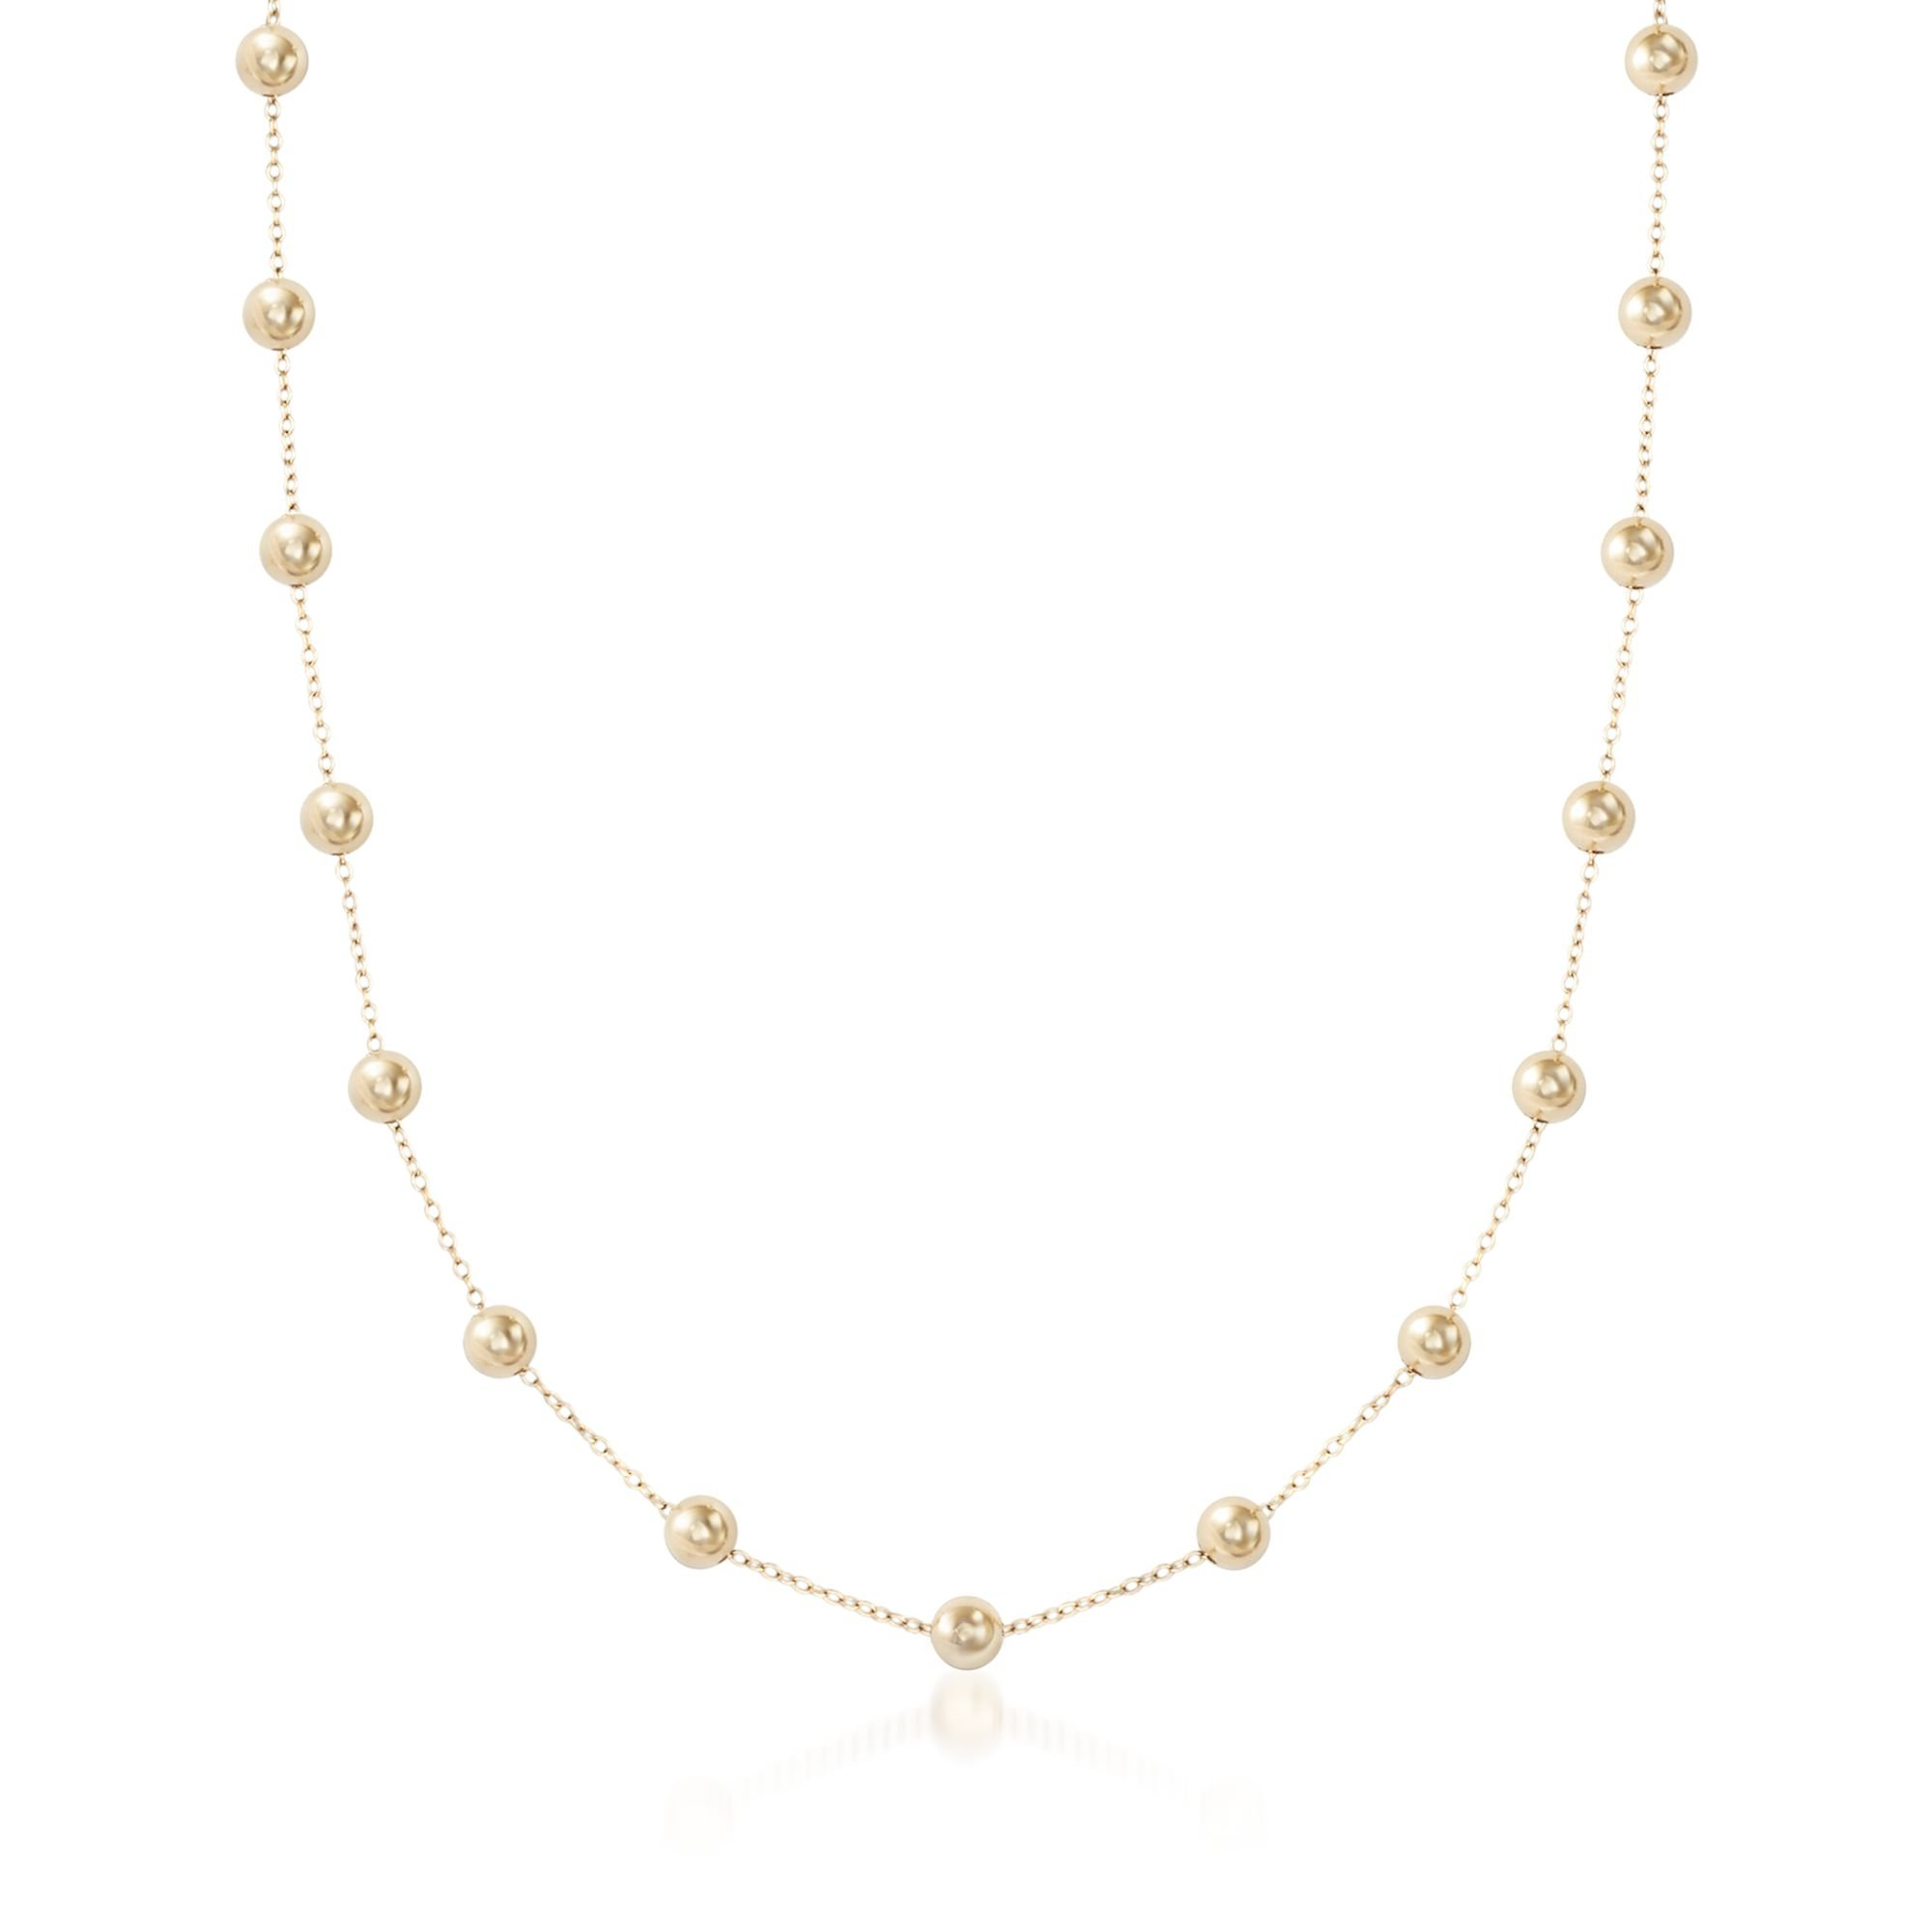 Ross-Simons 6mm 14kt Yellow Gold Over Silicone Bead Station Necklace by Ross-Simons